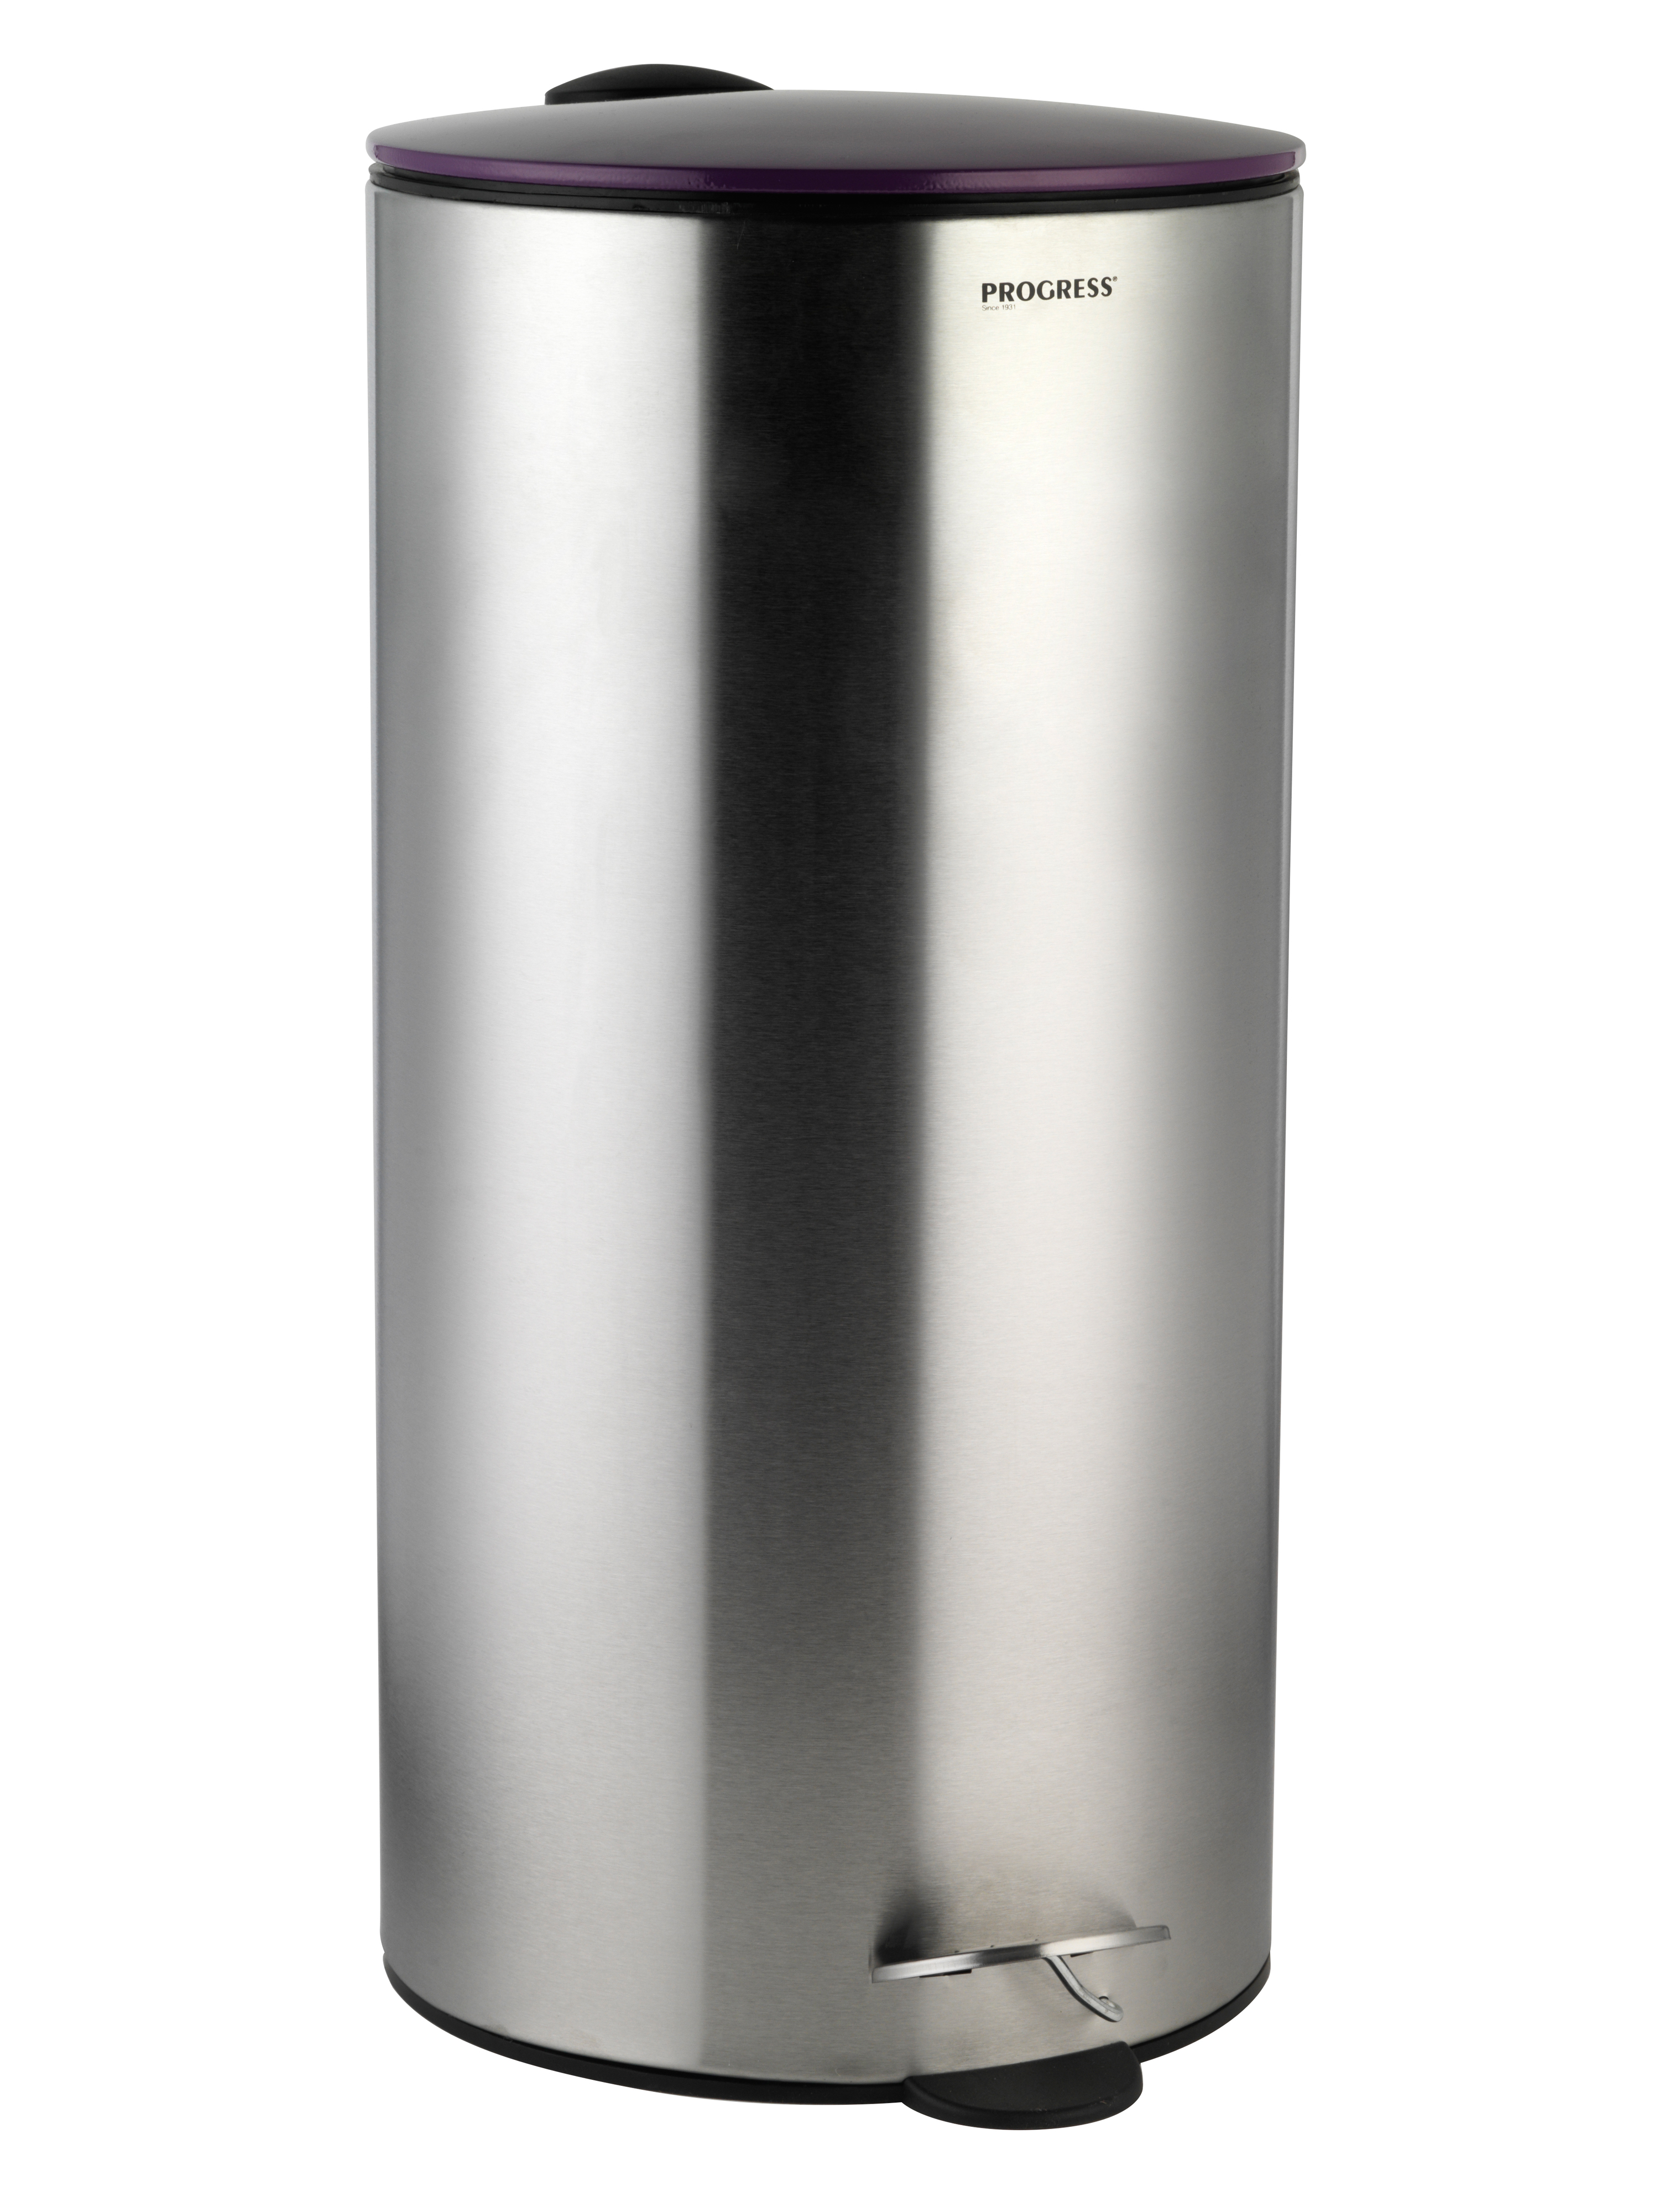 Progress litre stainless steel pedal bin with purple